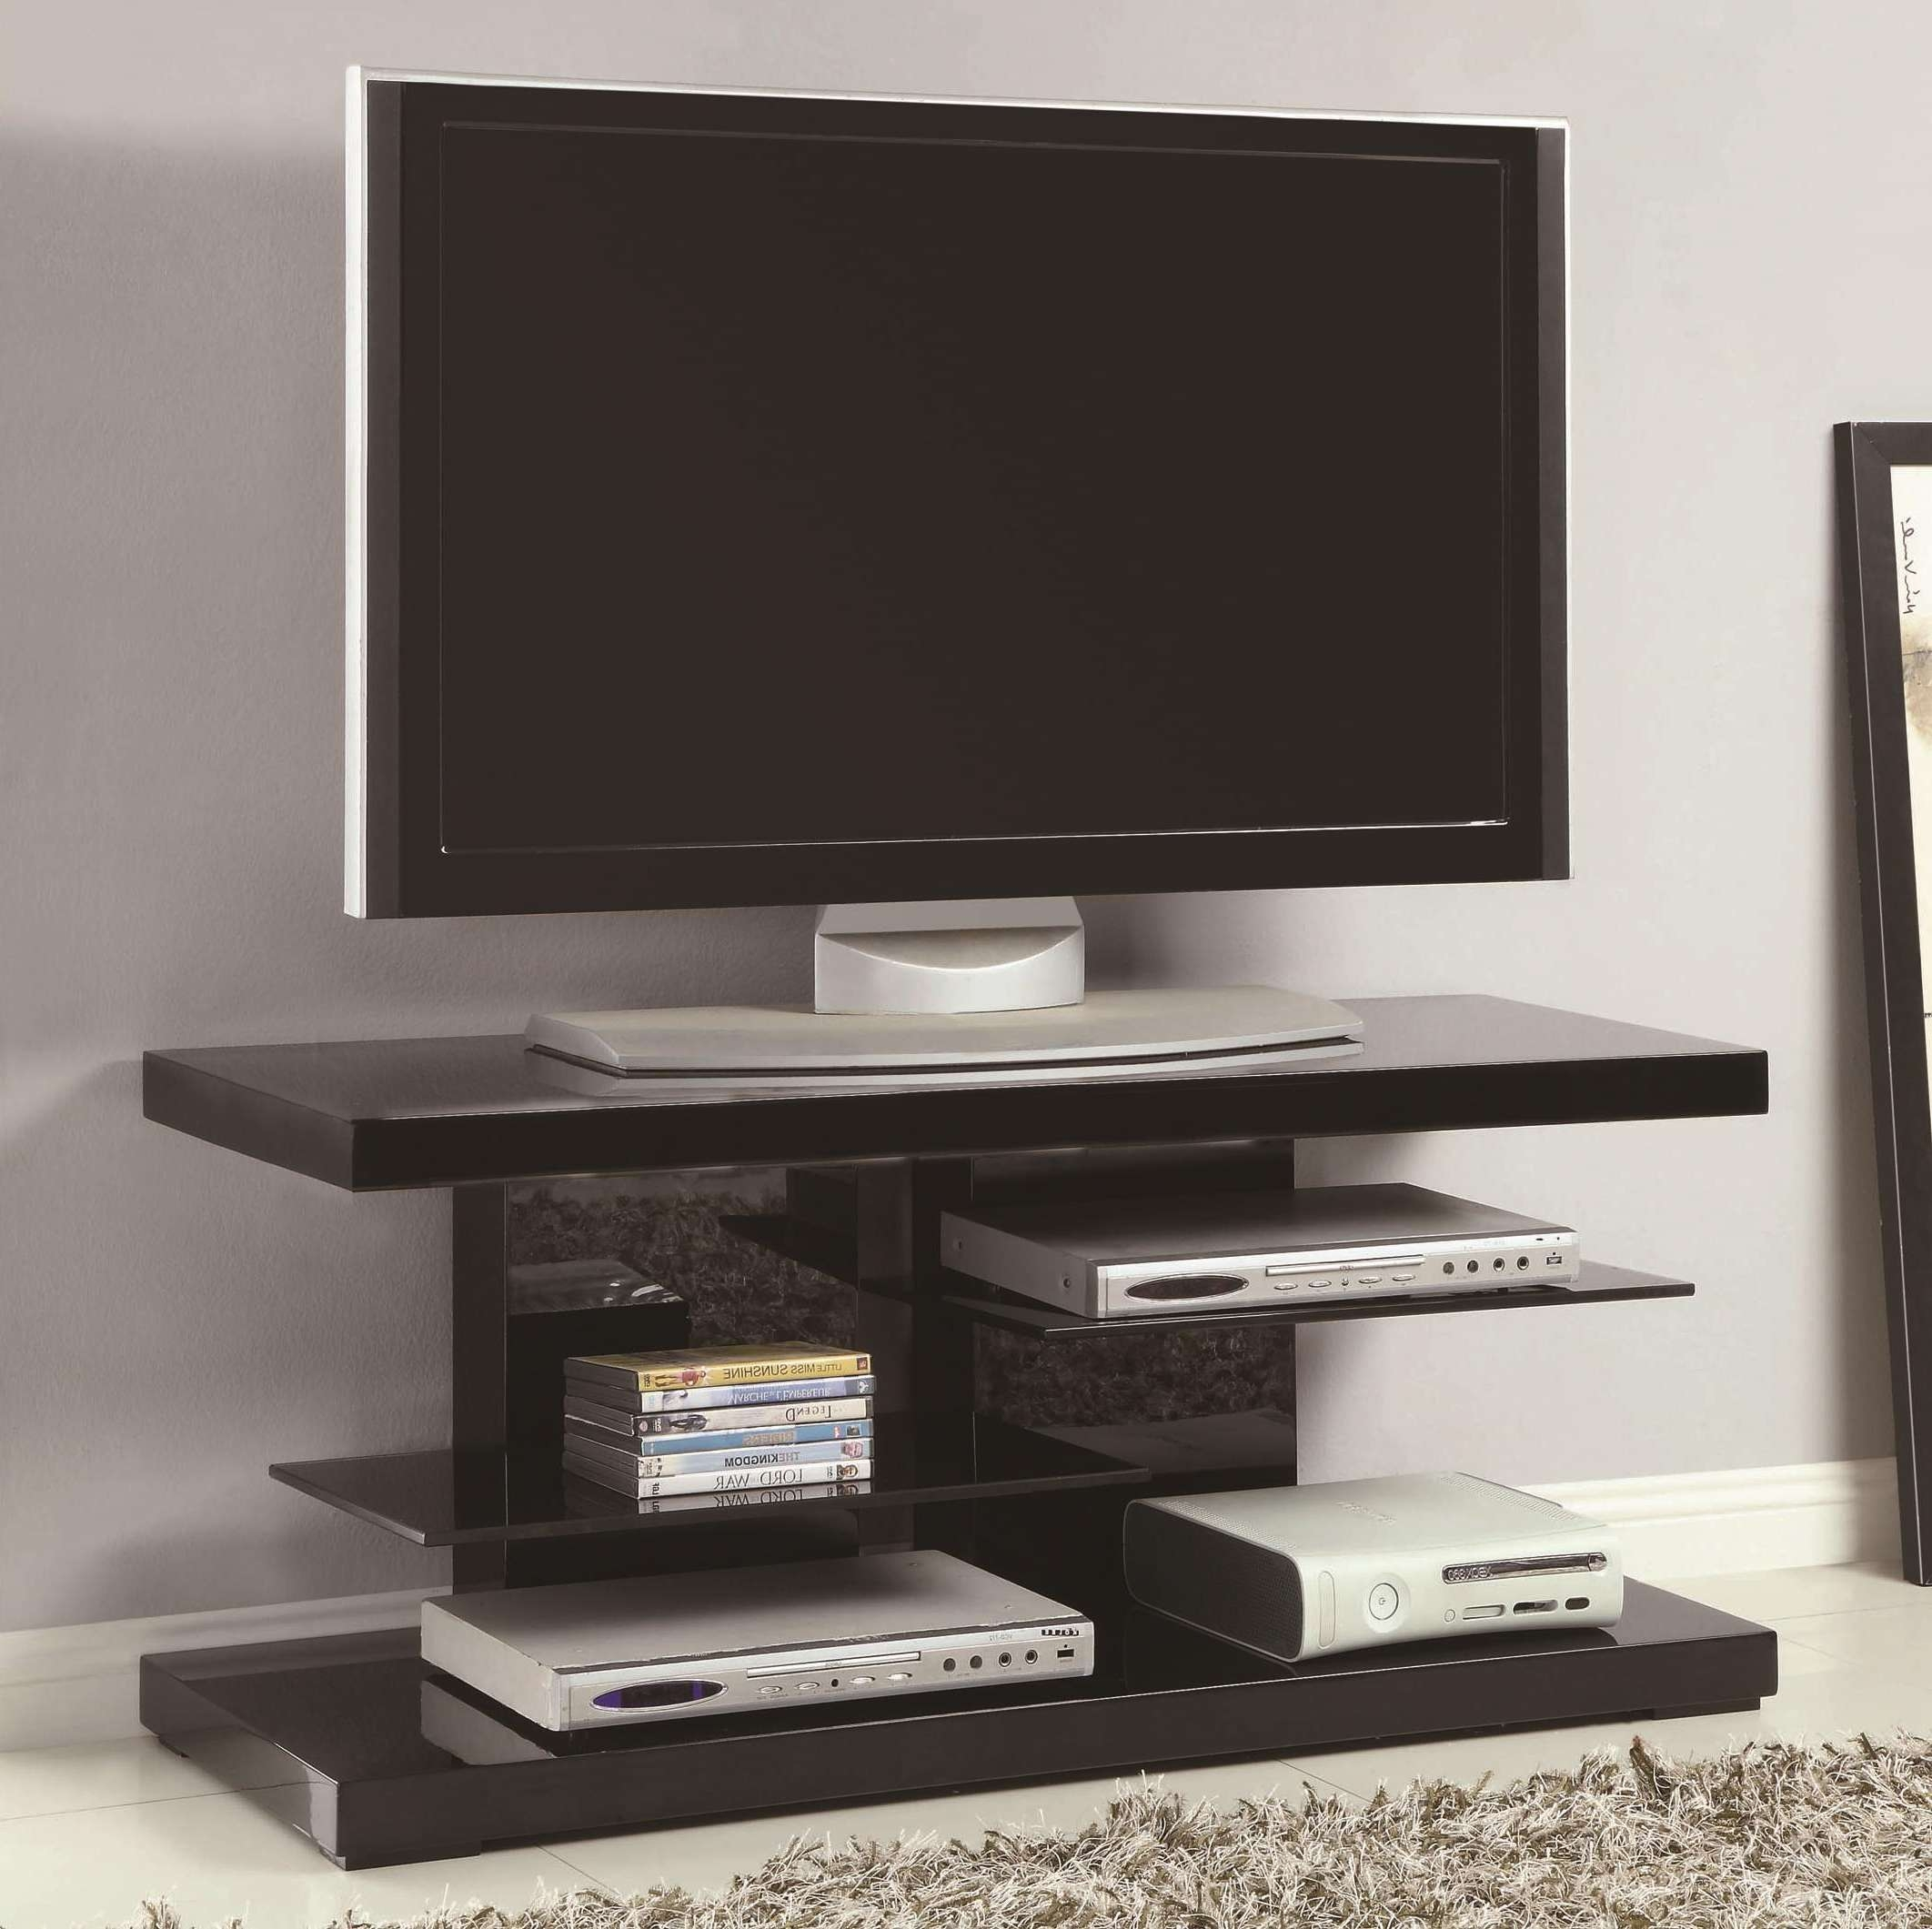 Best Contemporary Tv Console For Flat Screens | All Contemporary Regarding Contemporary Tv Stands For Flat Screens (View 9 of 15)